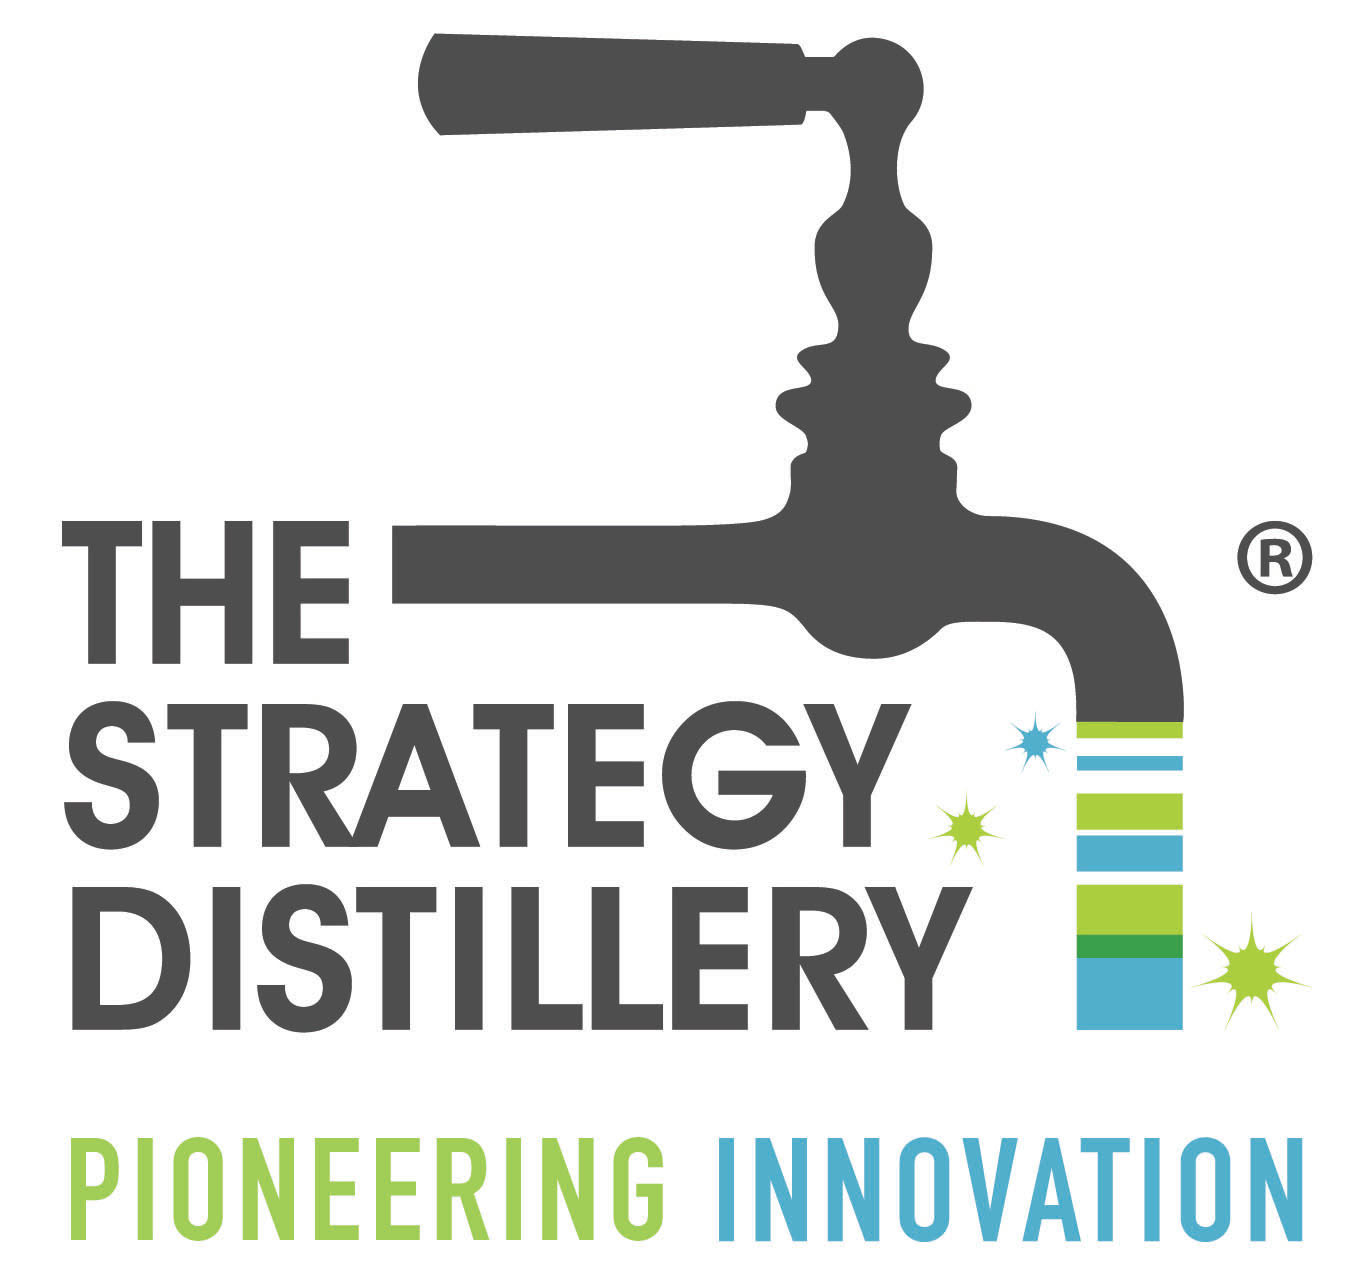 The Strategy Distillery logo